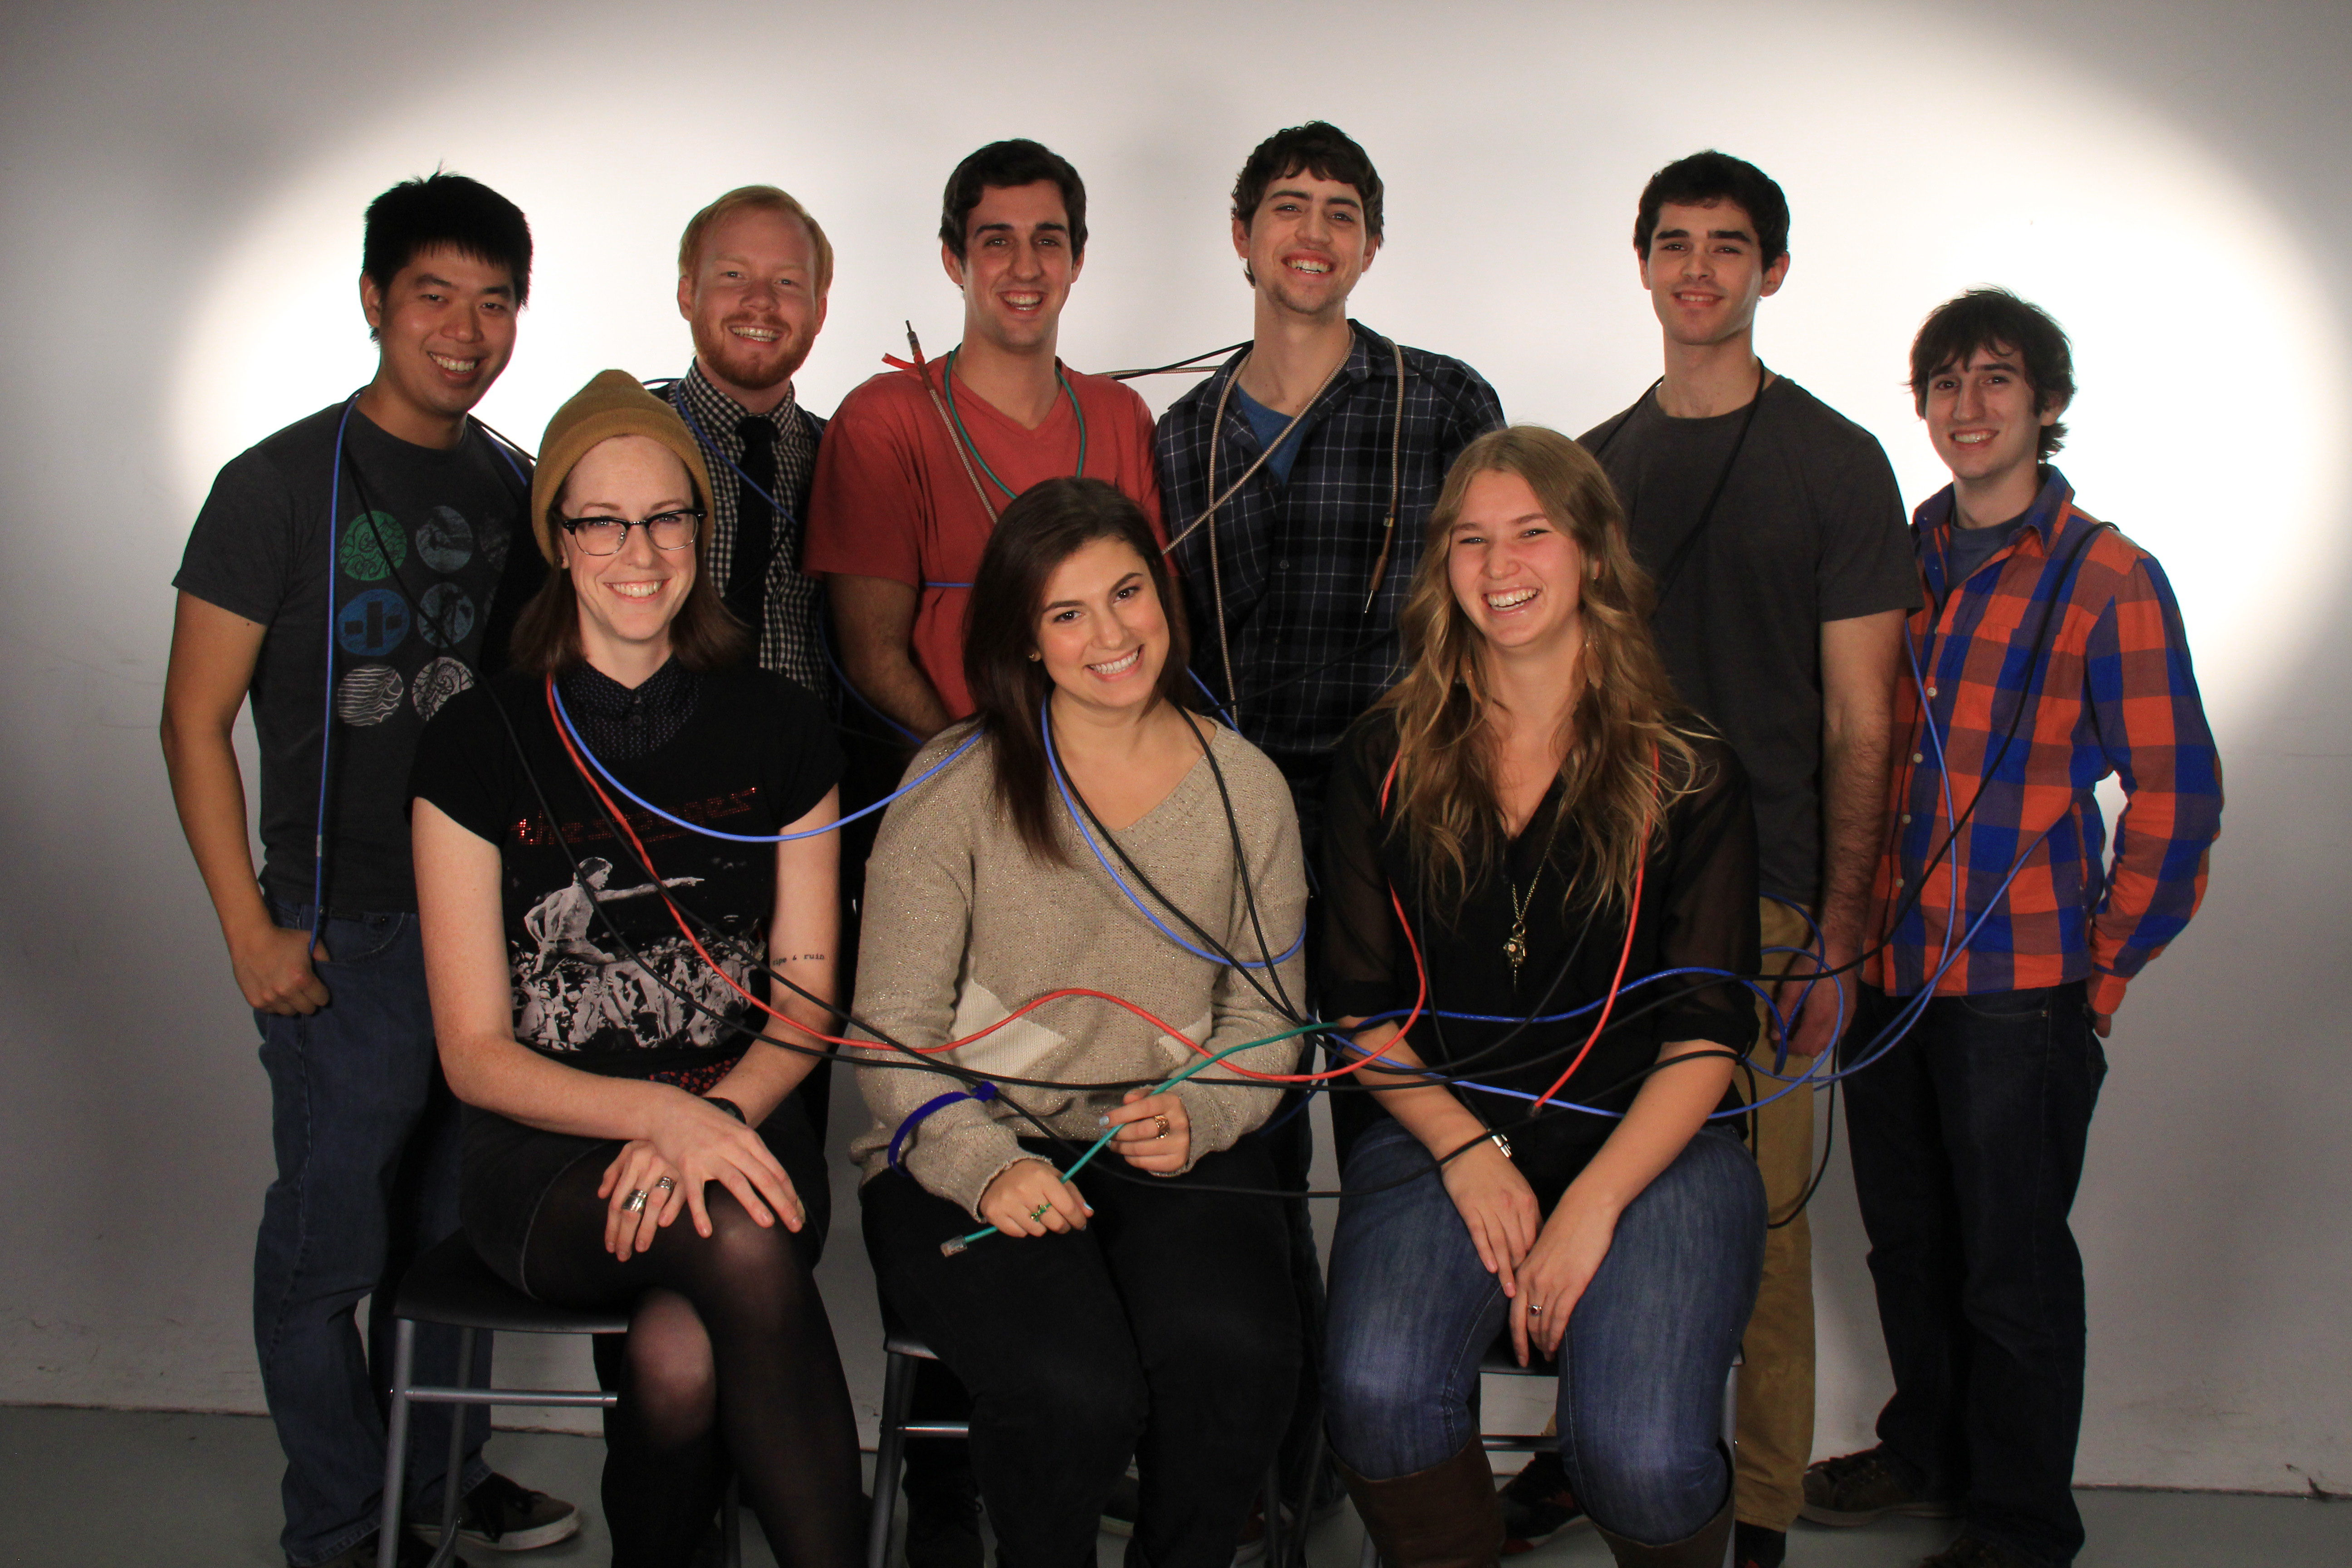 The group of fourth-year students get creative with their practicum